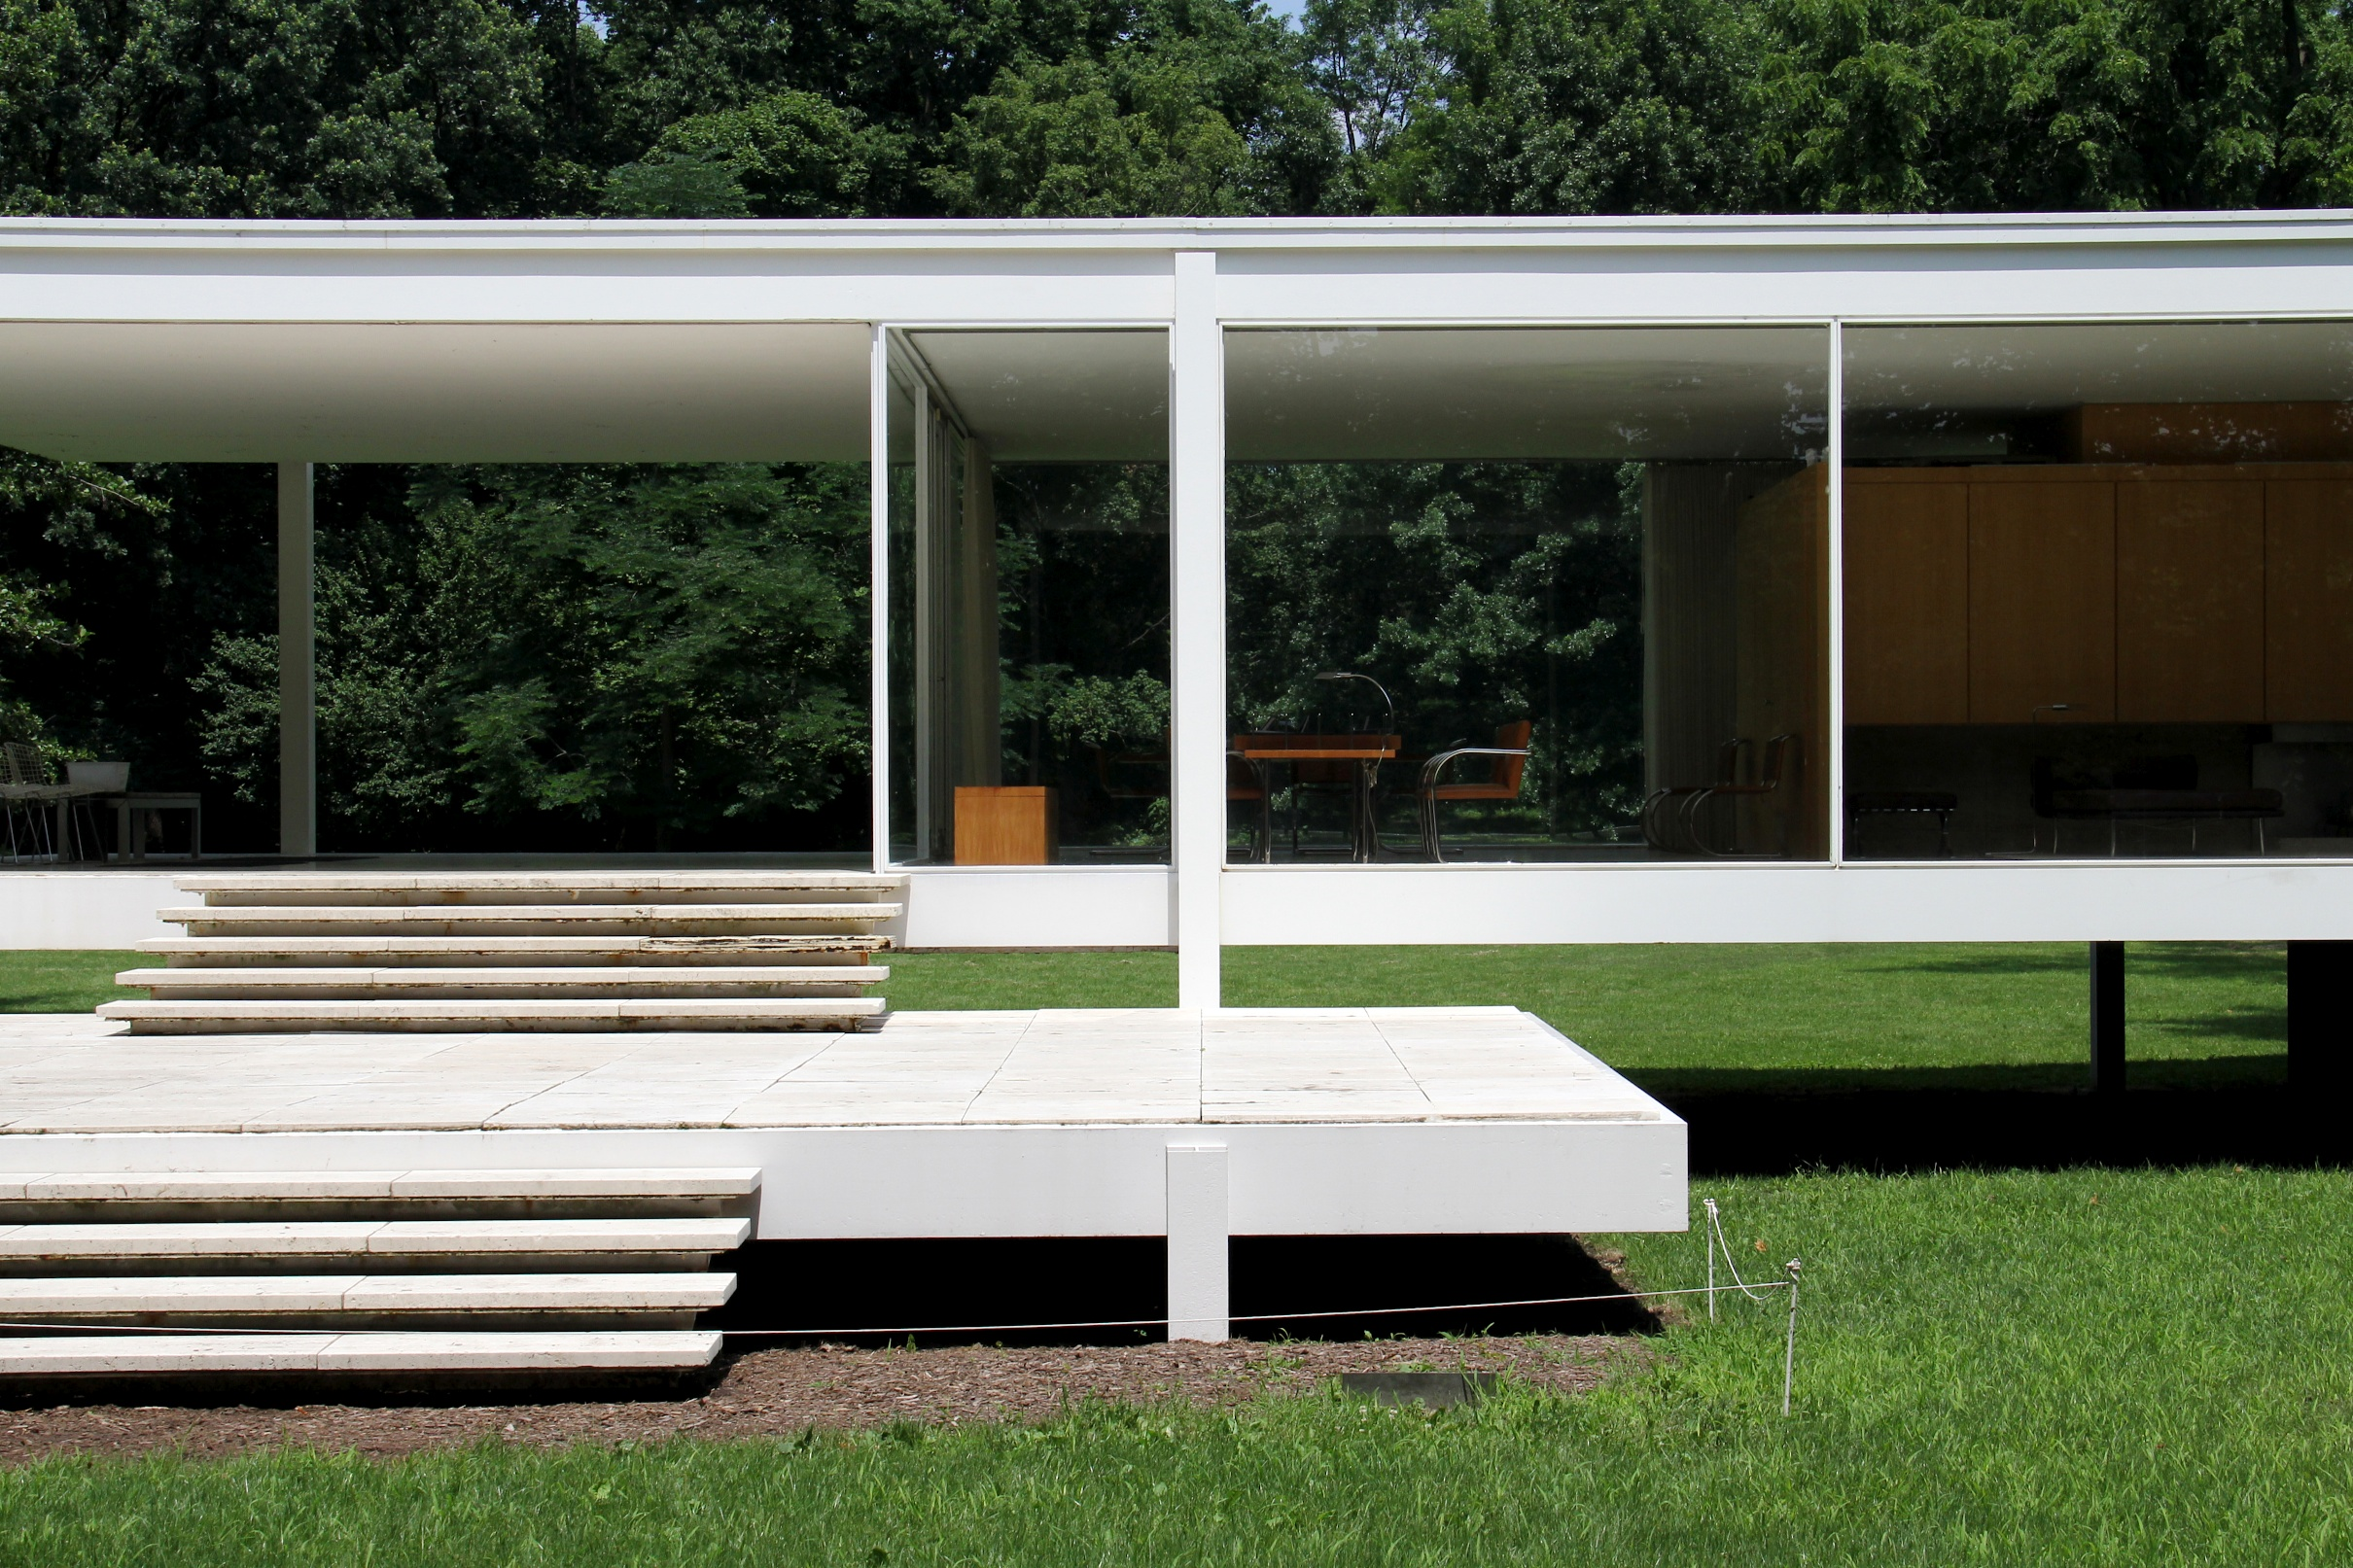 farnsworth house 1951 traverse360 architecture. Black Bedroom Furniture Sets. Home Design Ideas